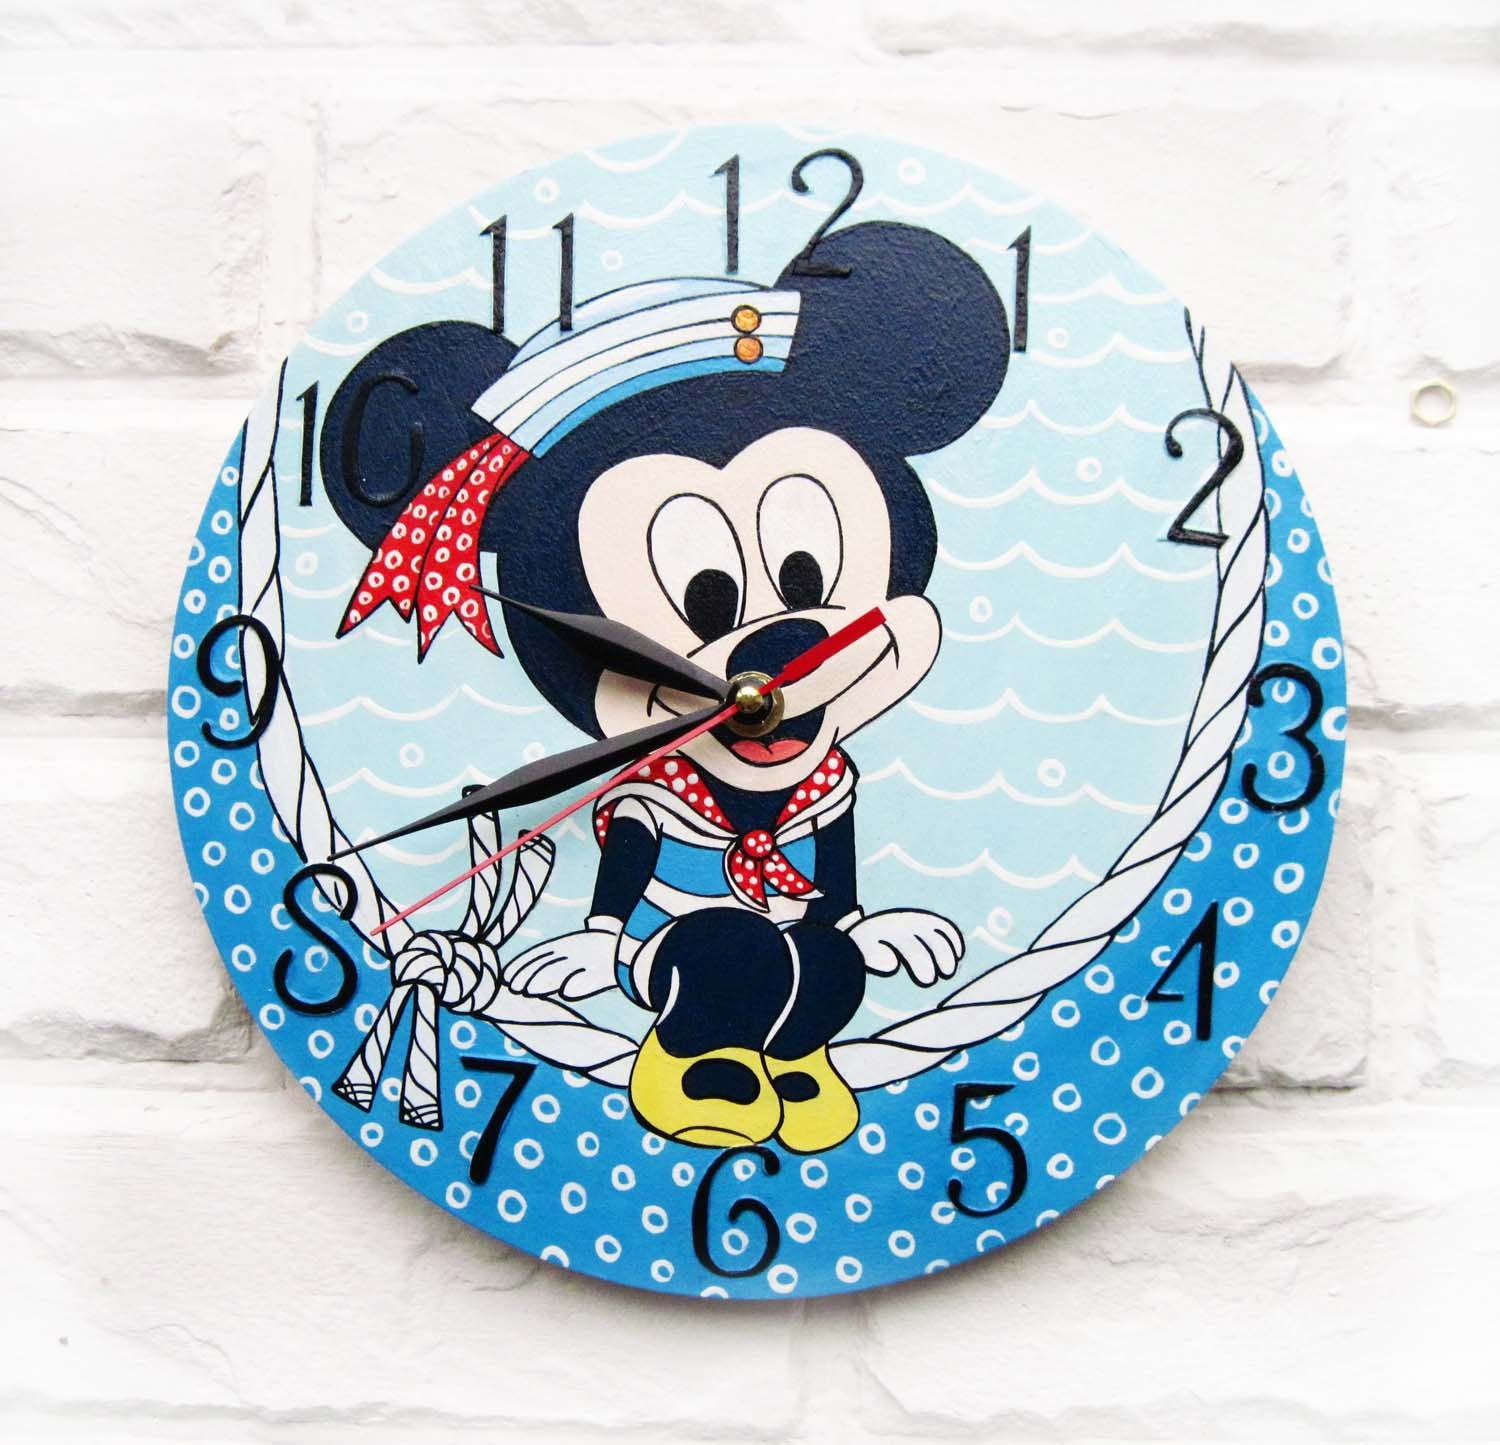 The mickey mouse wall clock home decor for children by for Mickey mouse home decorations